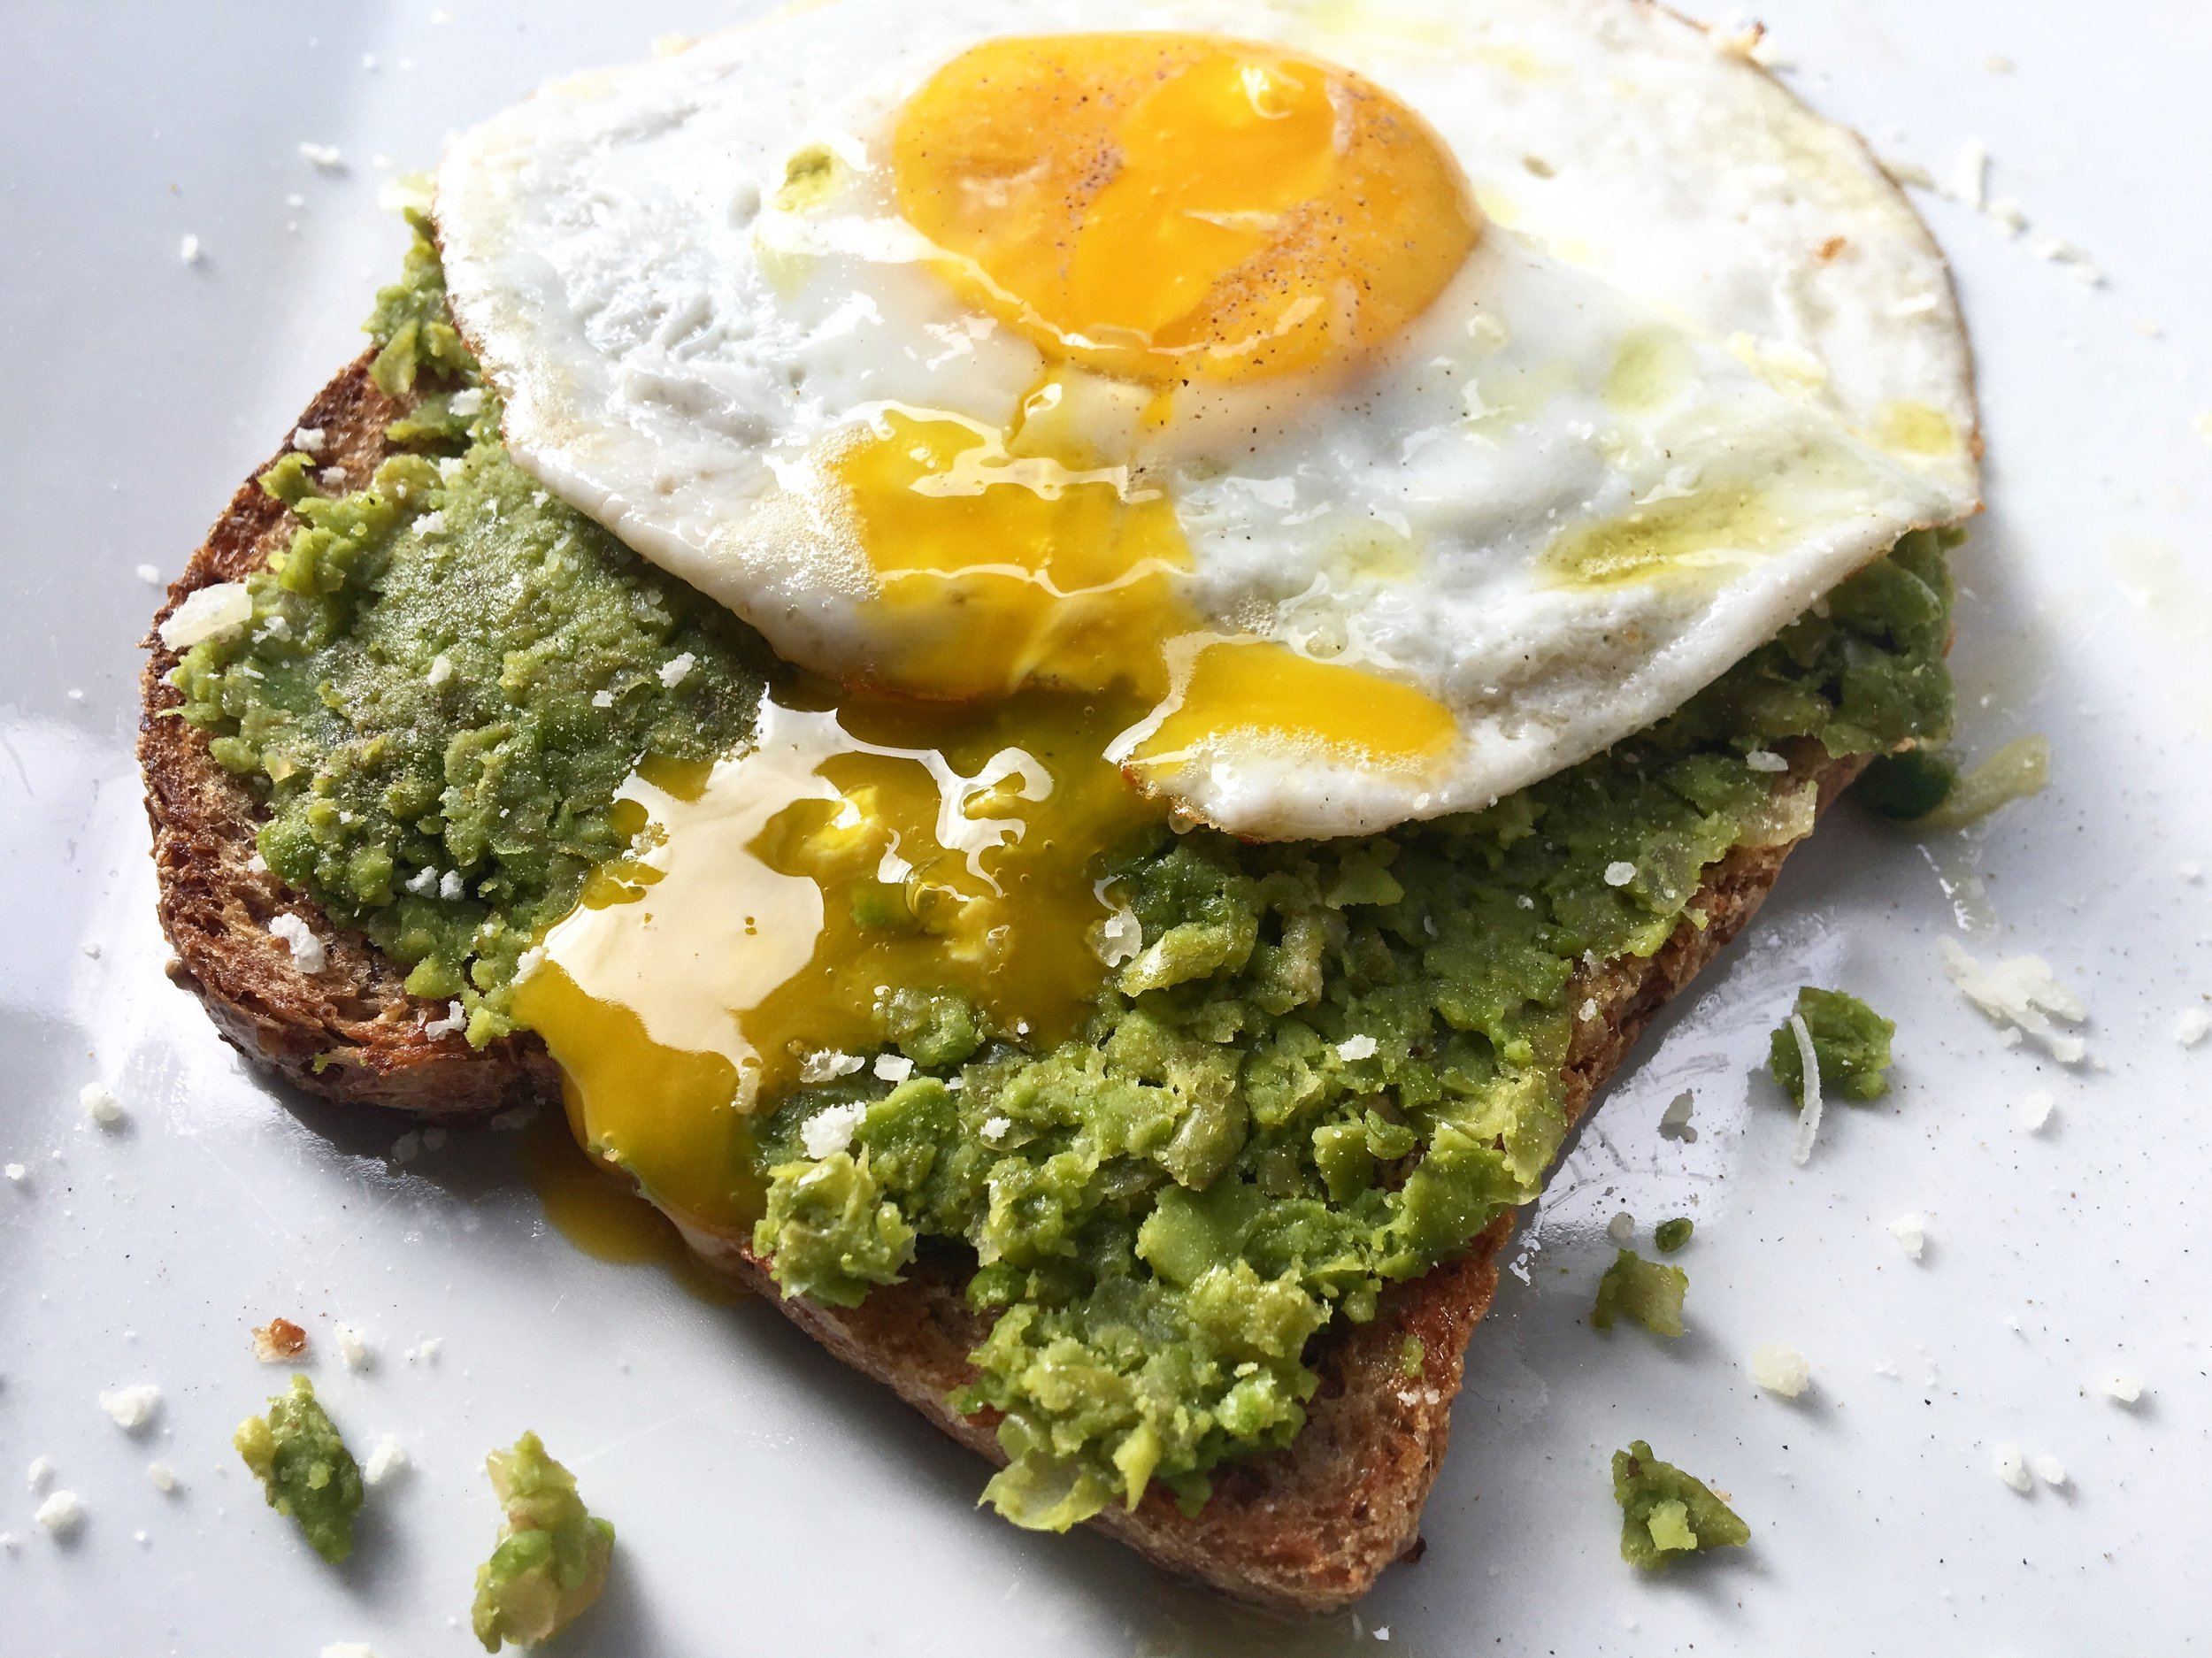 pea toast (after the yolk break)